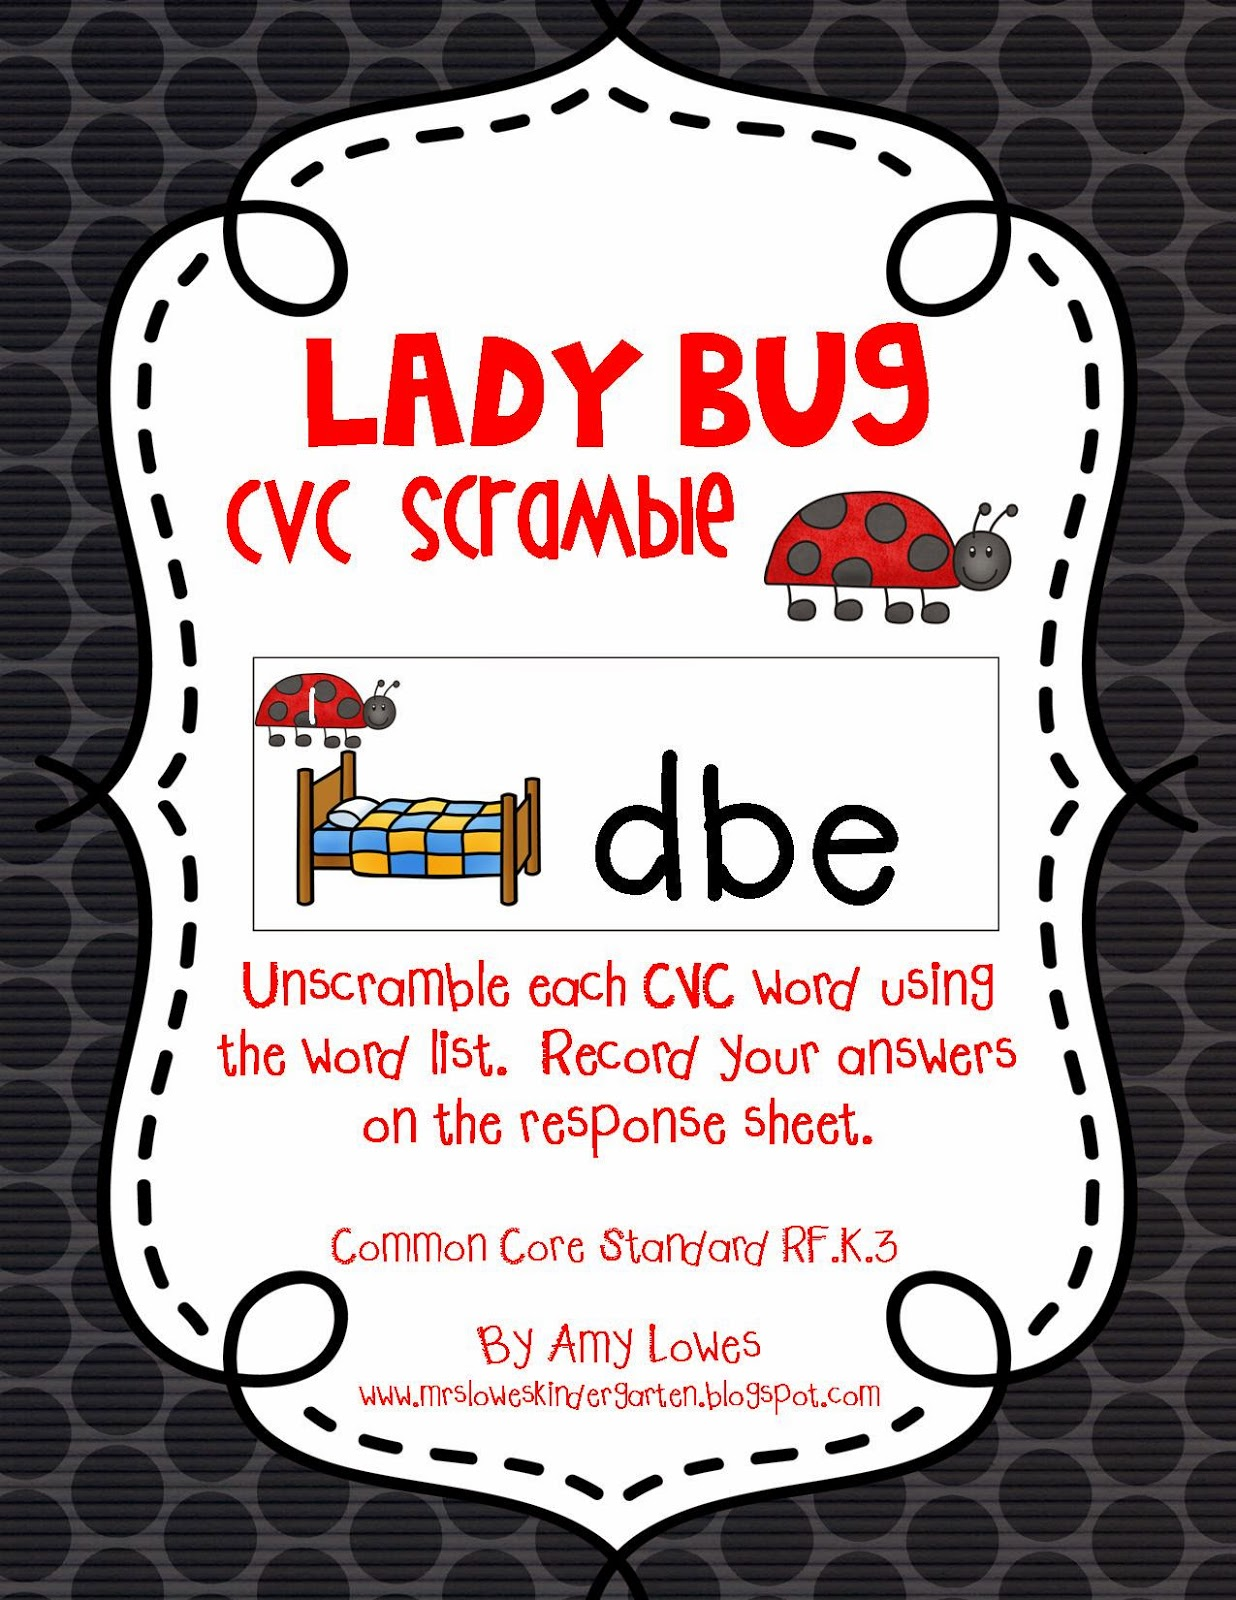 http://www.teacherspayteachers.com/Product/Lady-Bug-CVC-Scramble-1226496